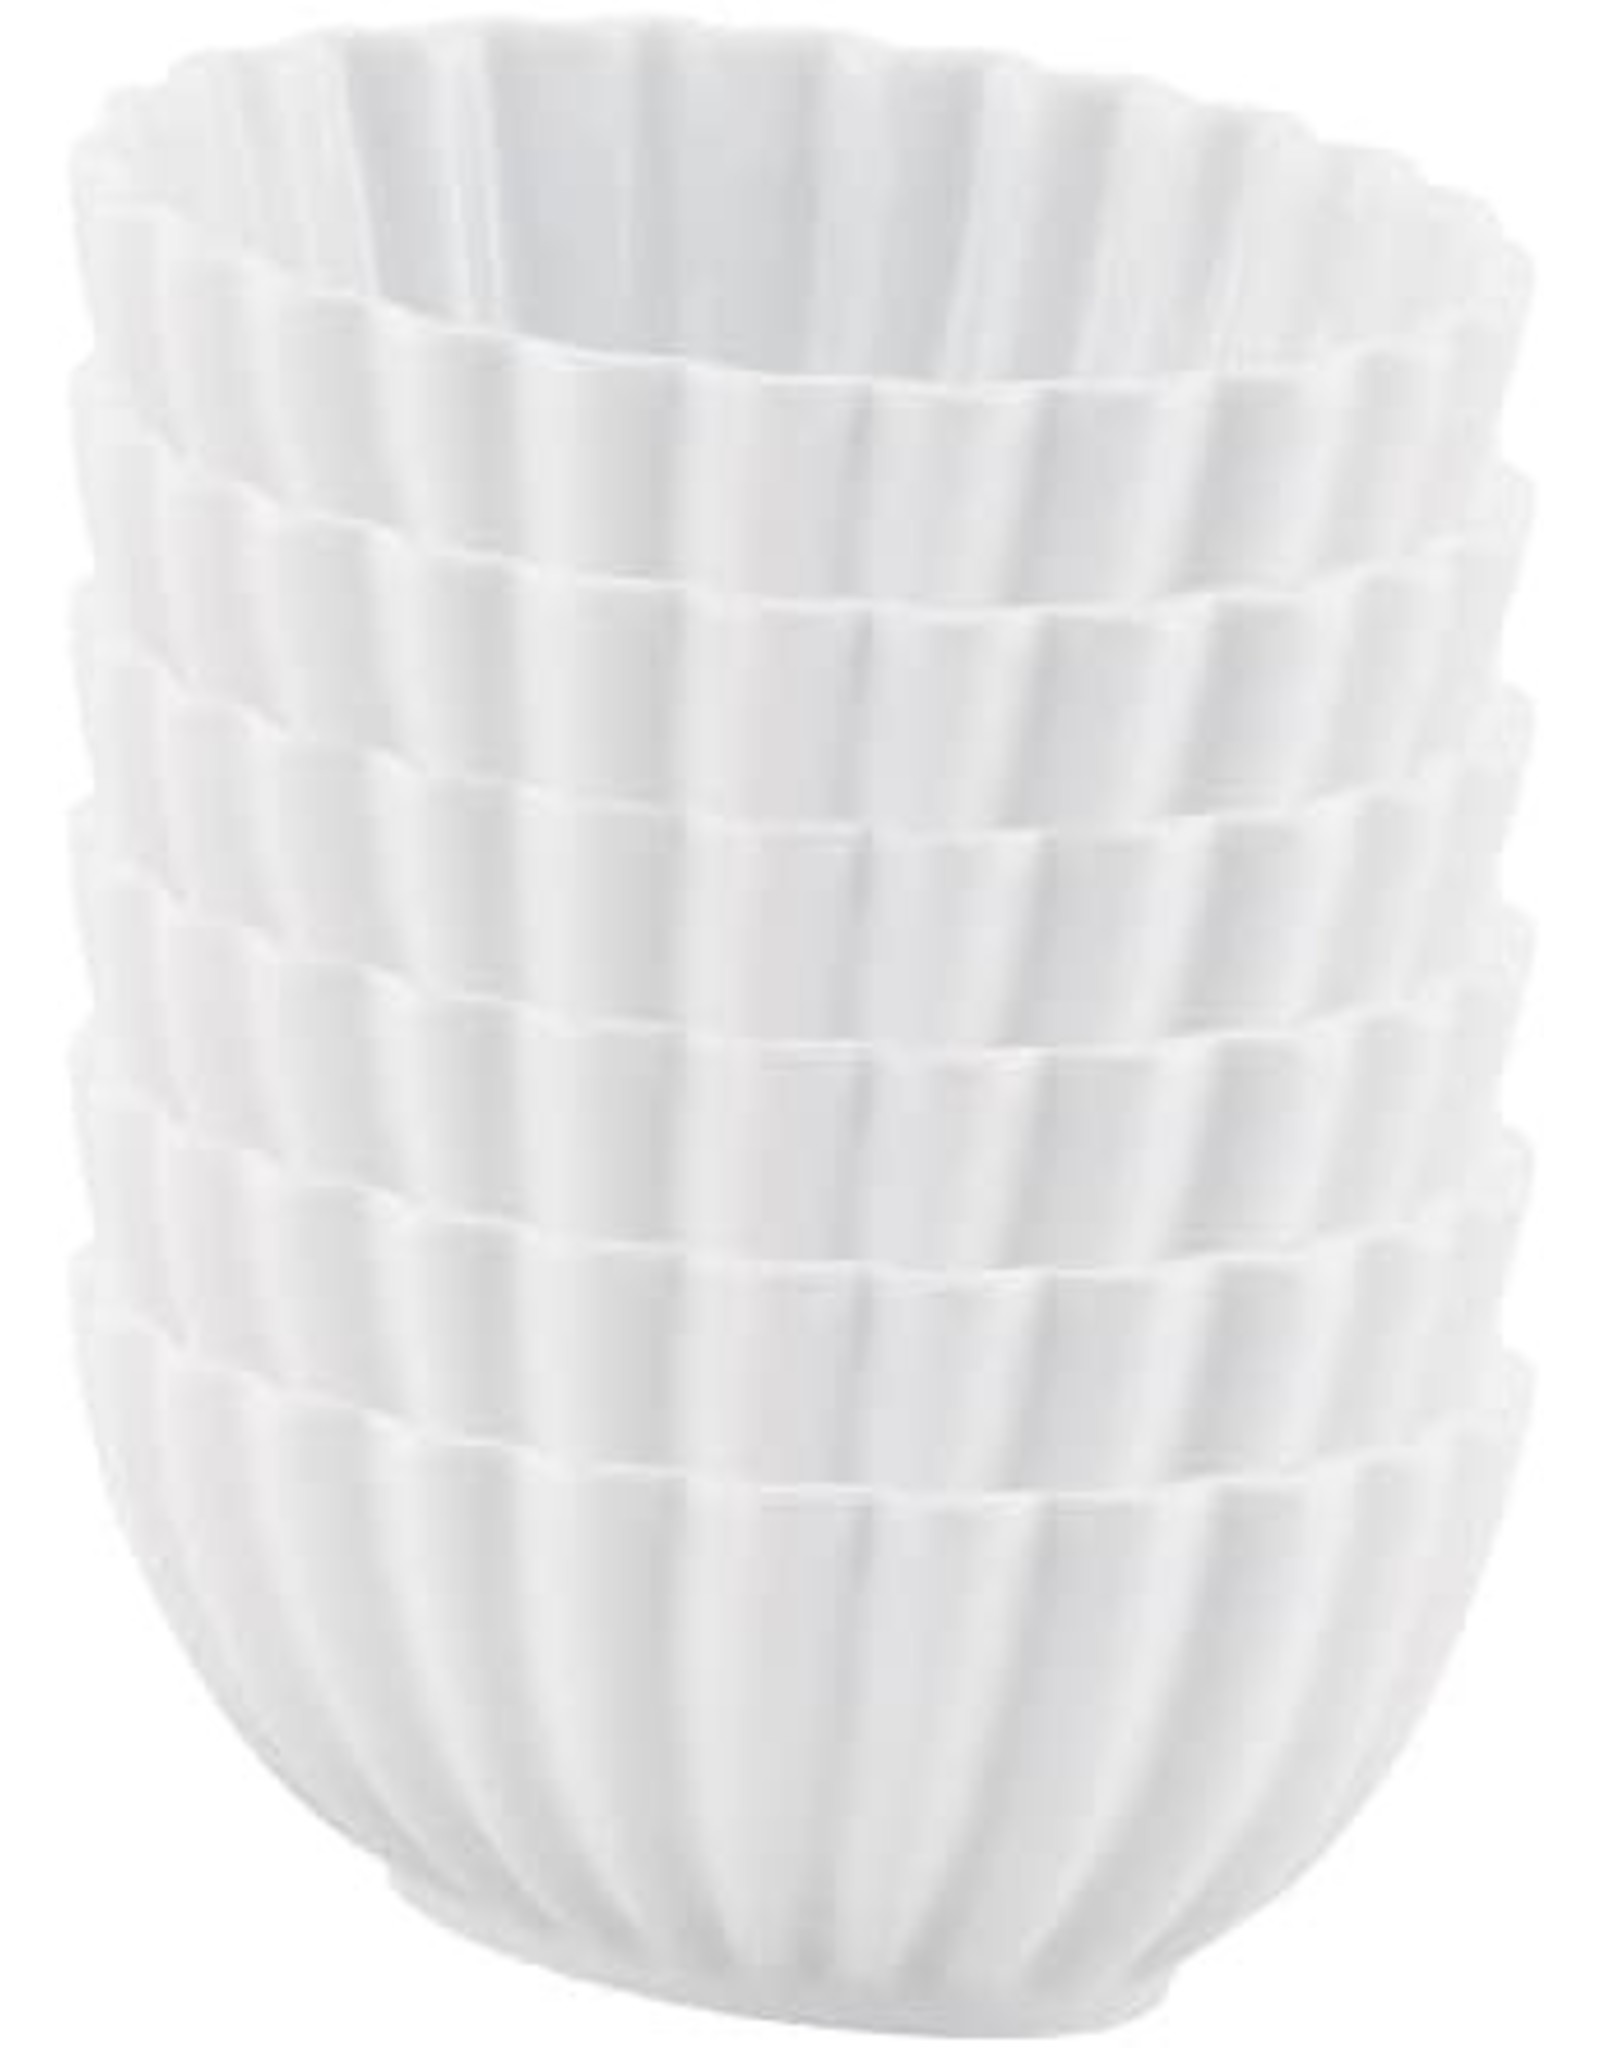 Harold Import Company Bowl Scalloped WHITE 8 oz 1 cup